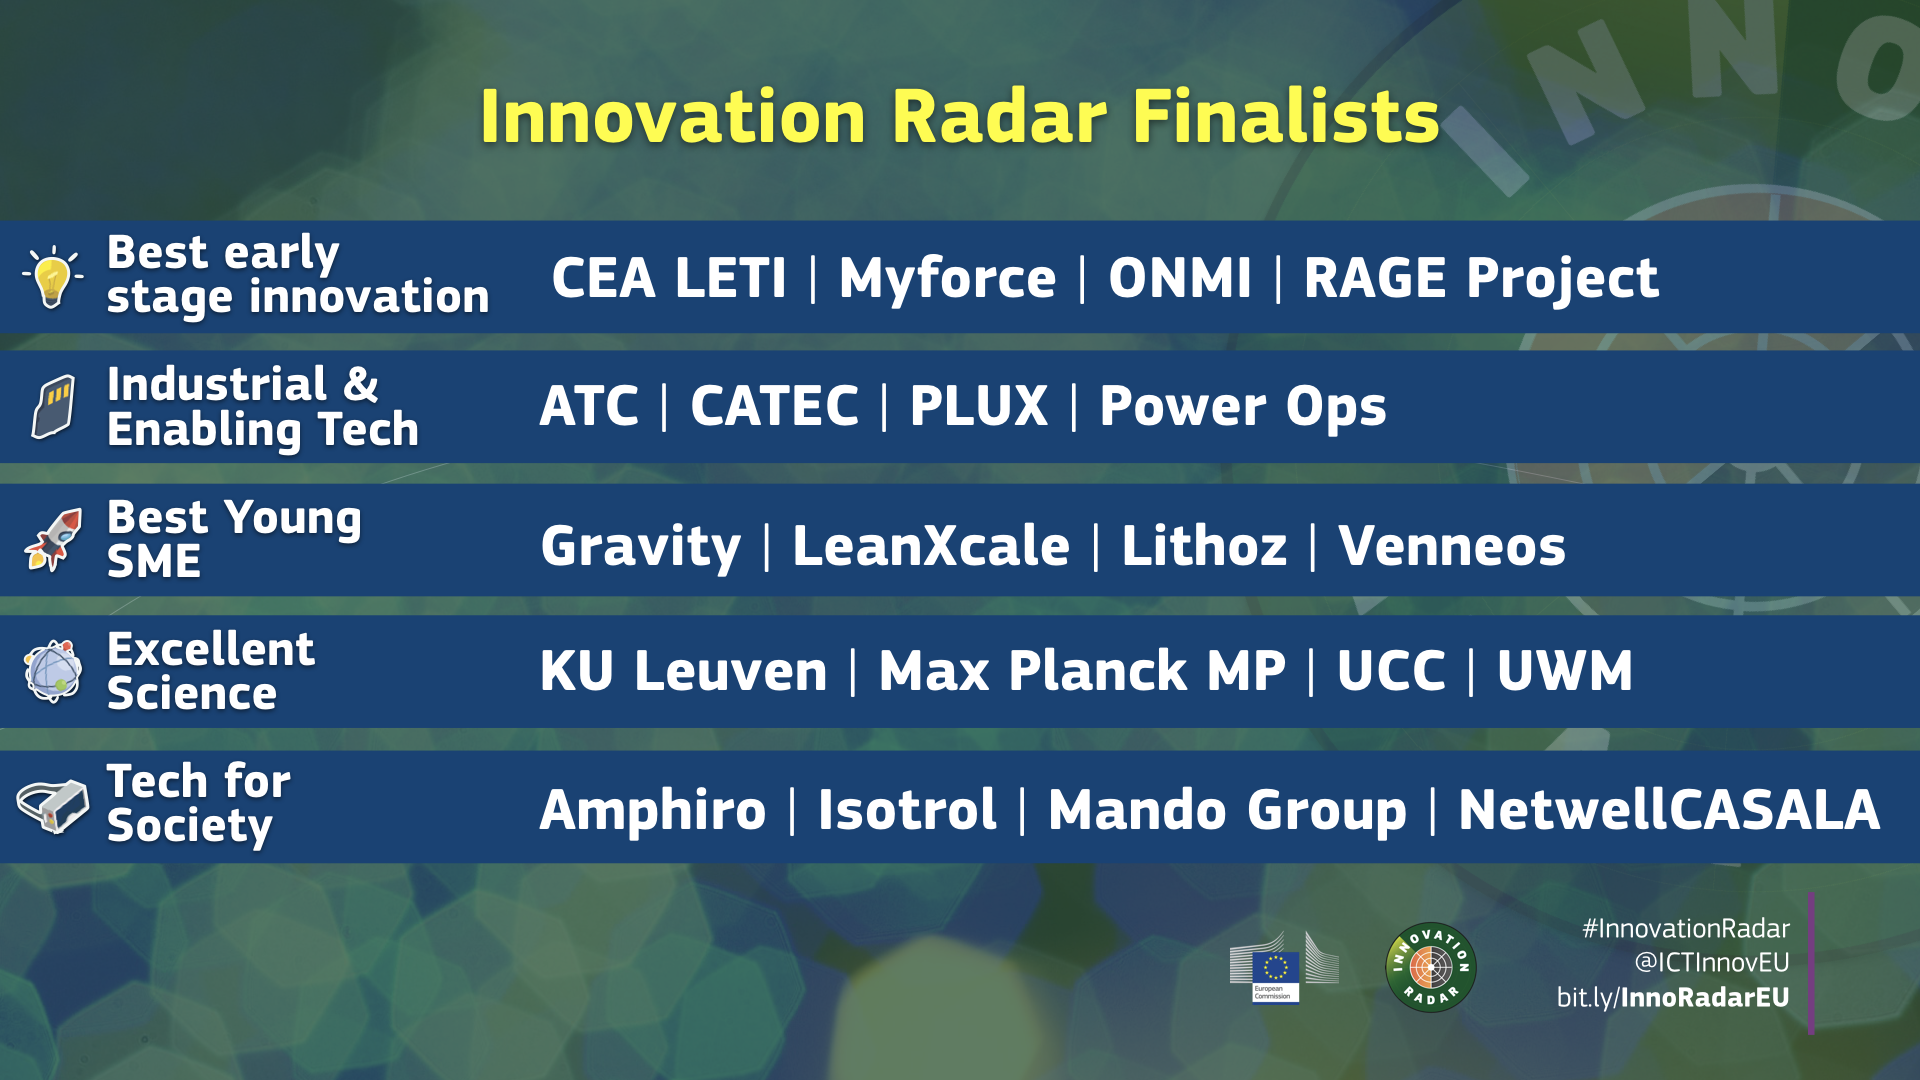 InnovationRadar